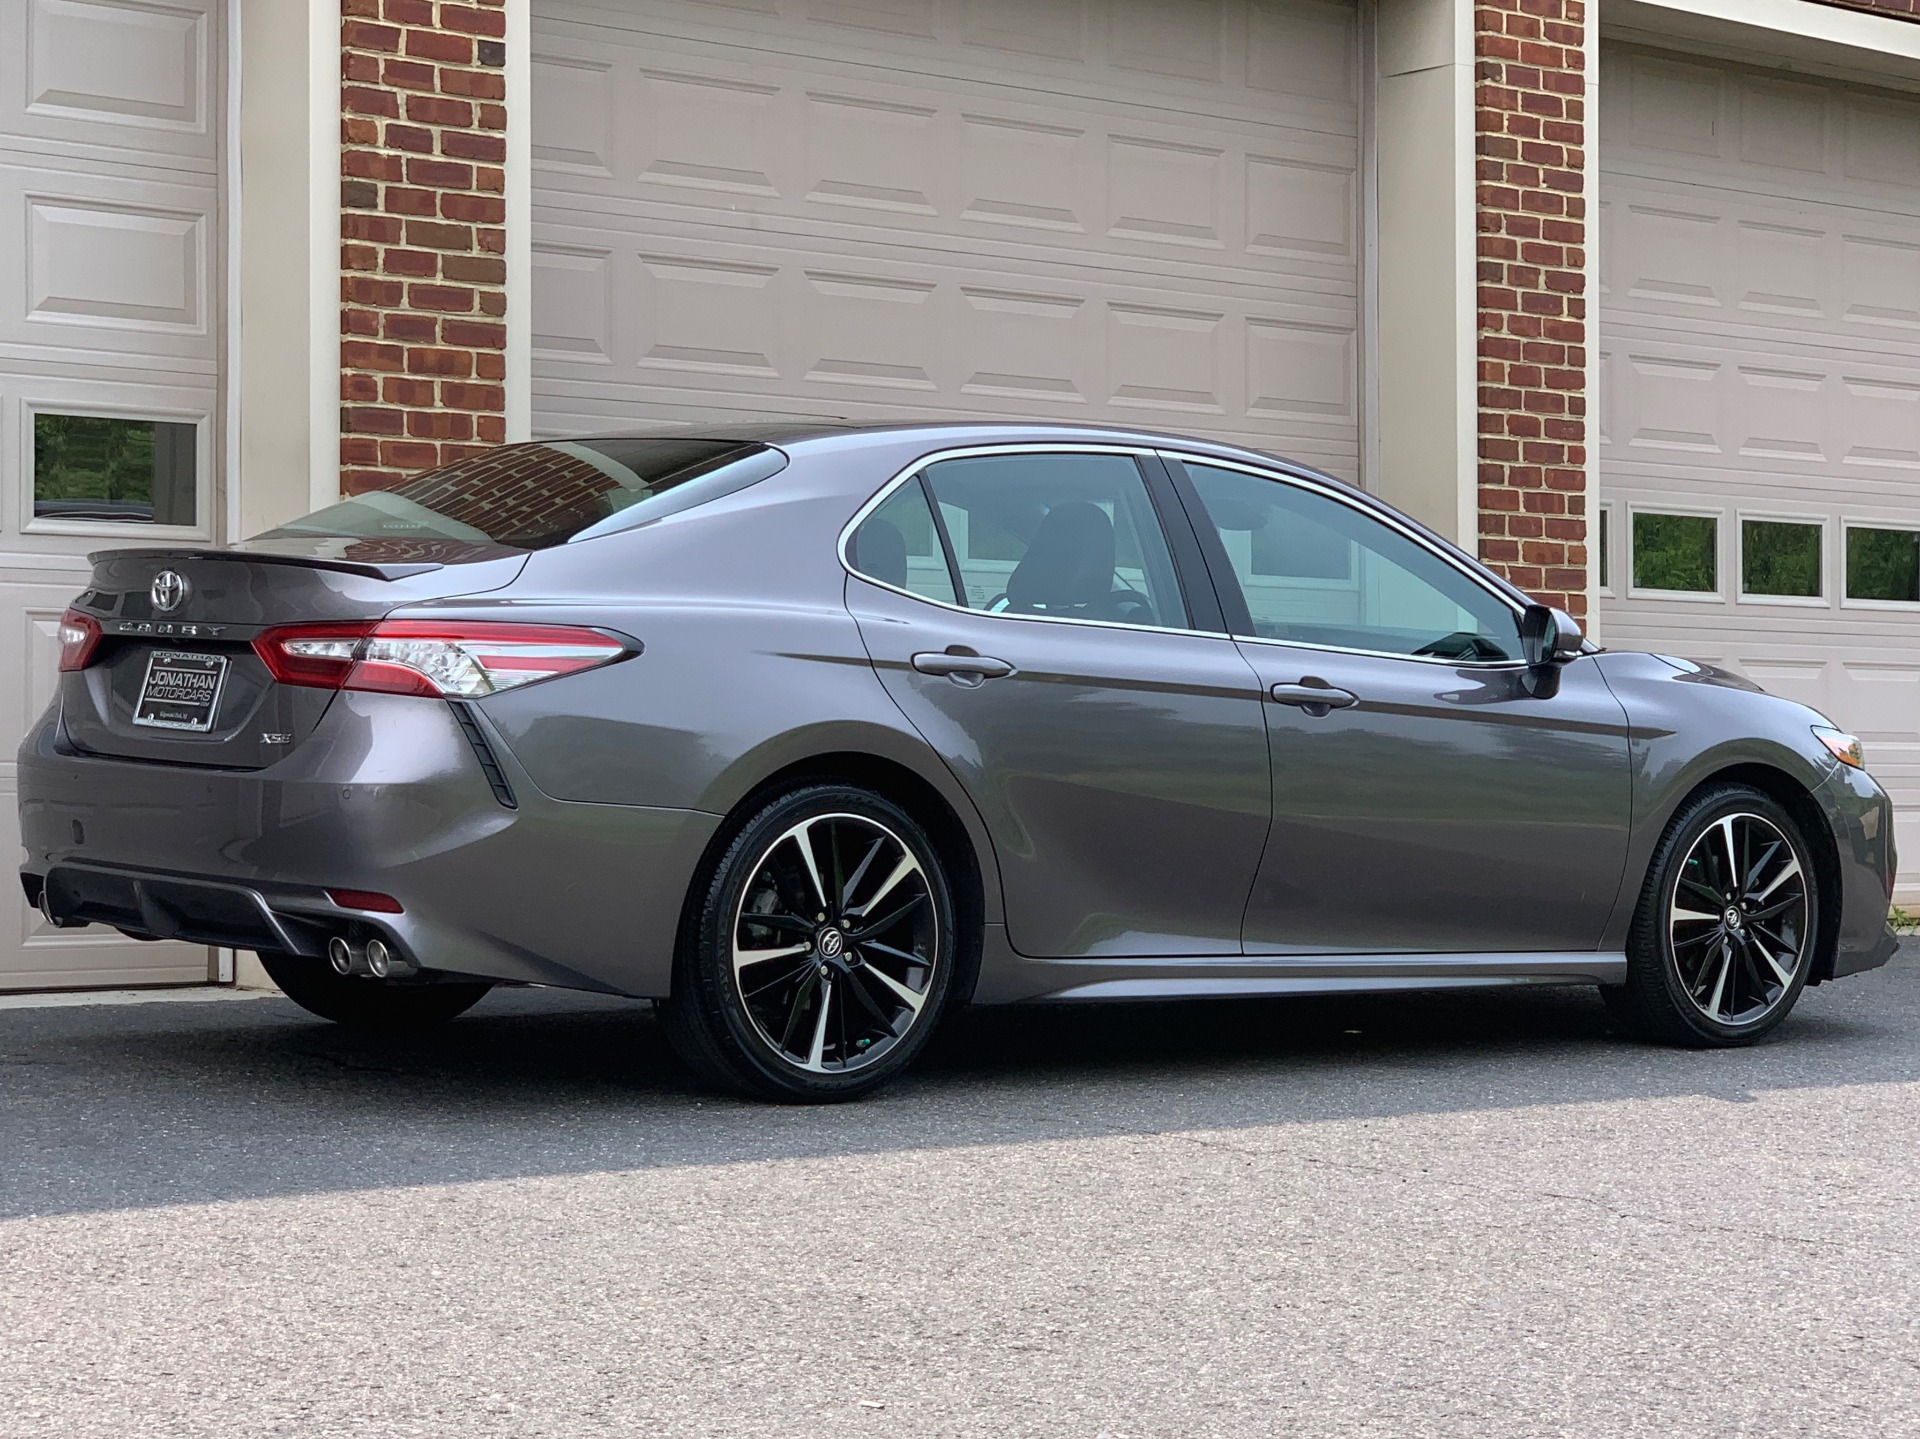 Toyota Dealer Nj >> 2018 Toyota Camry XSE Stock # 025586 for sale near ...